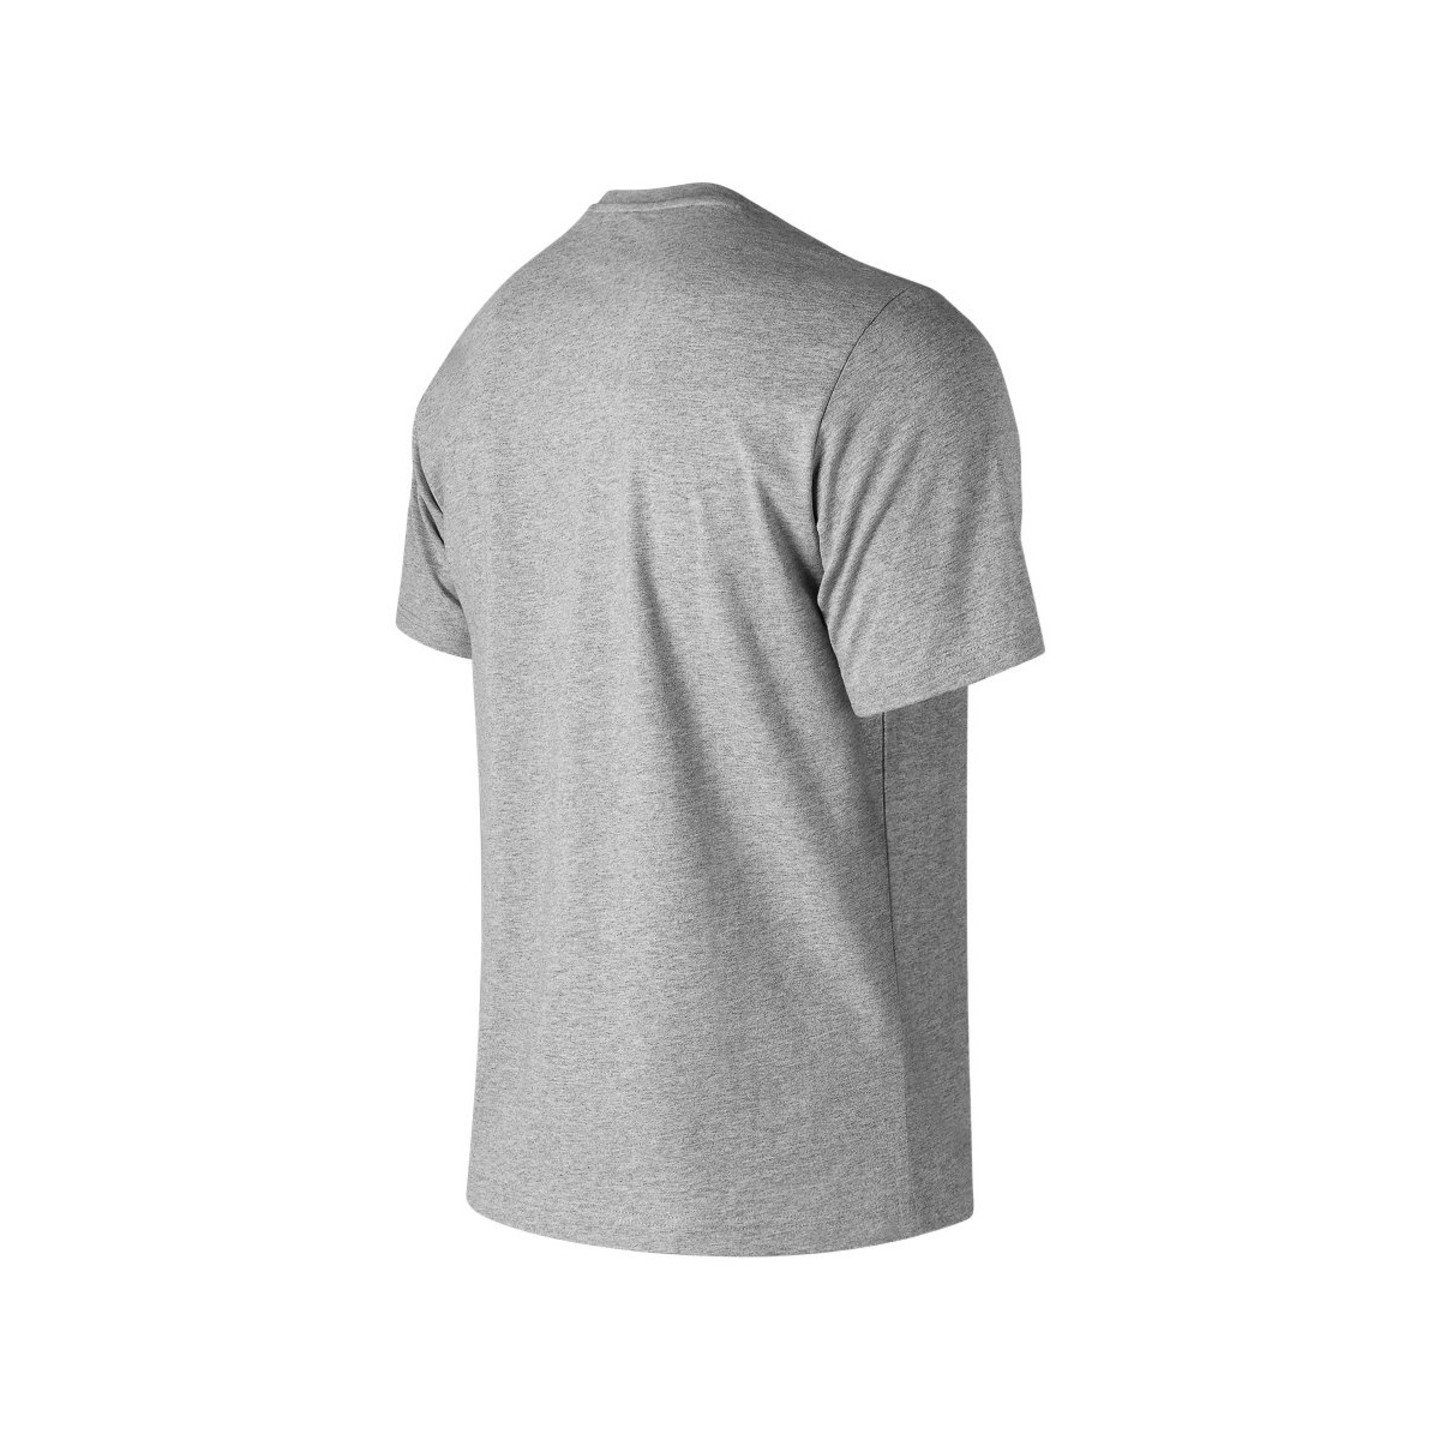 New Balance Legacy Tee Heather Grey 690990-60-121